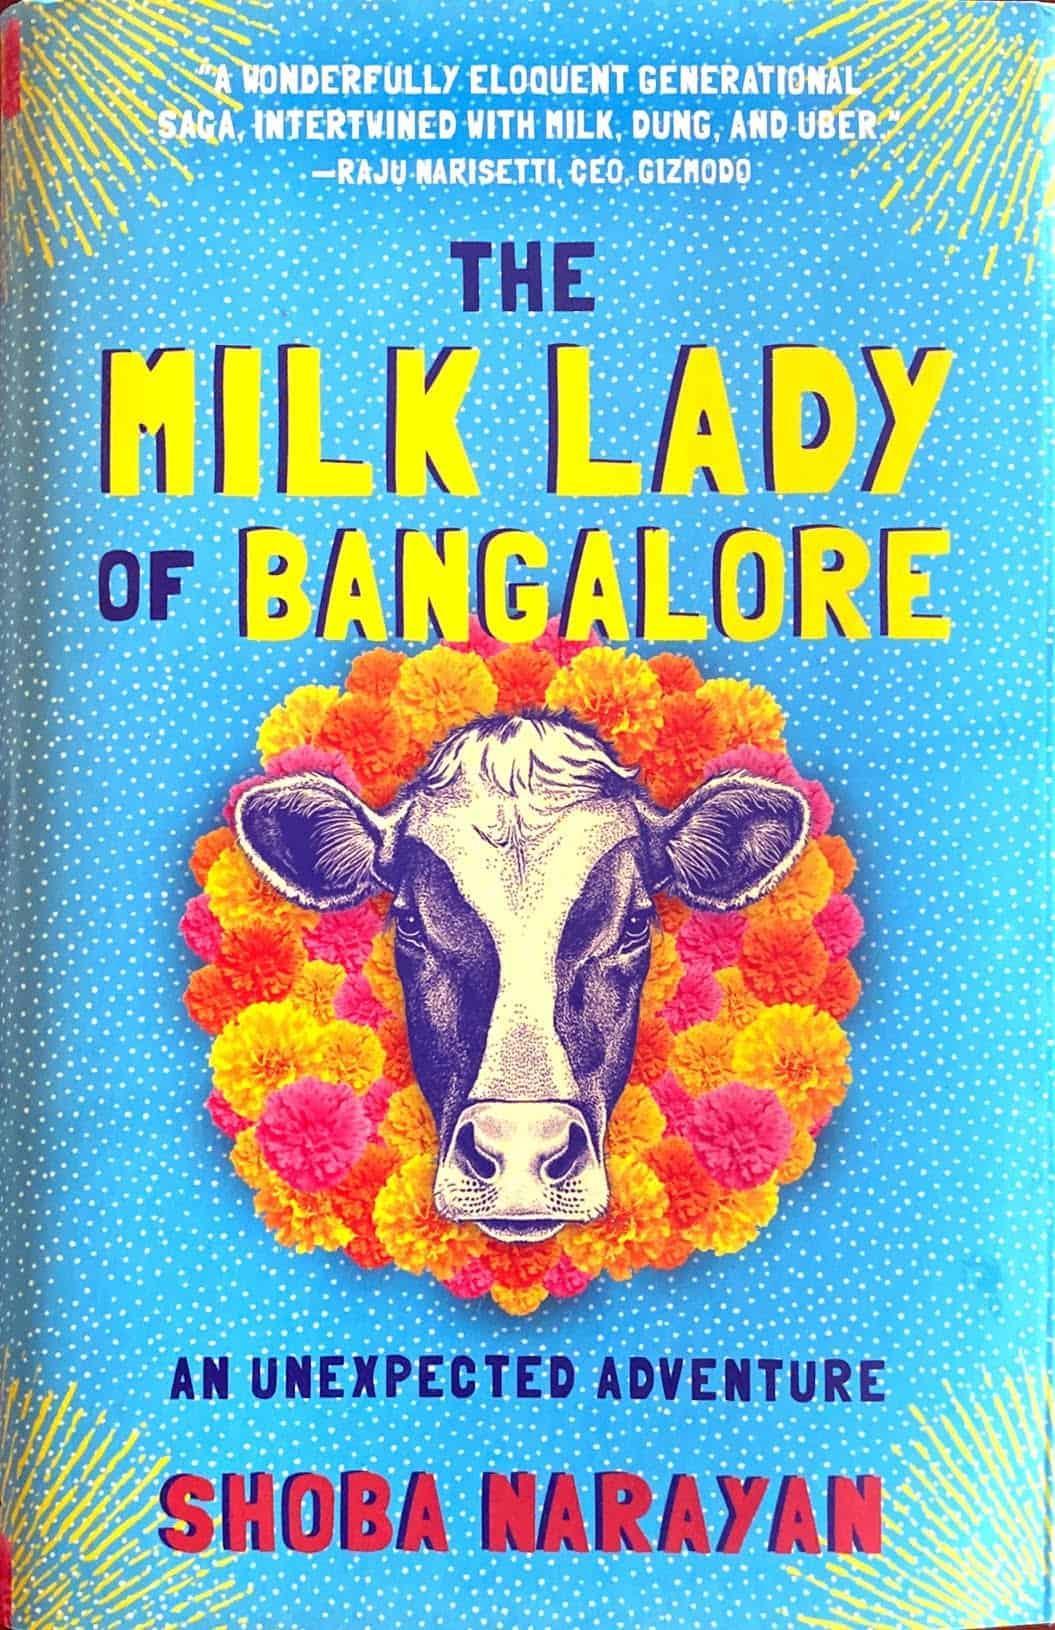 Hardcover edition of The Milk Lady of Bangalore by Shoba Narayan